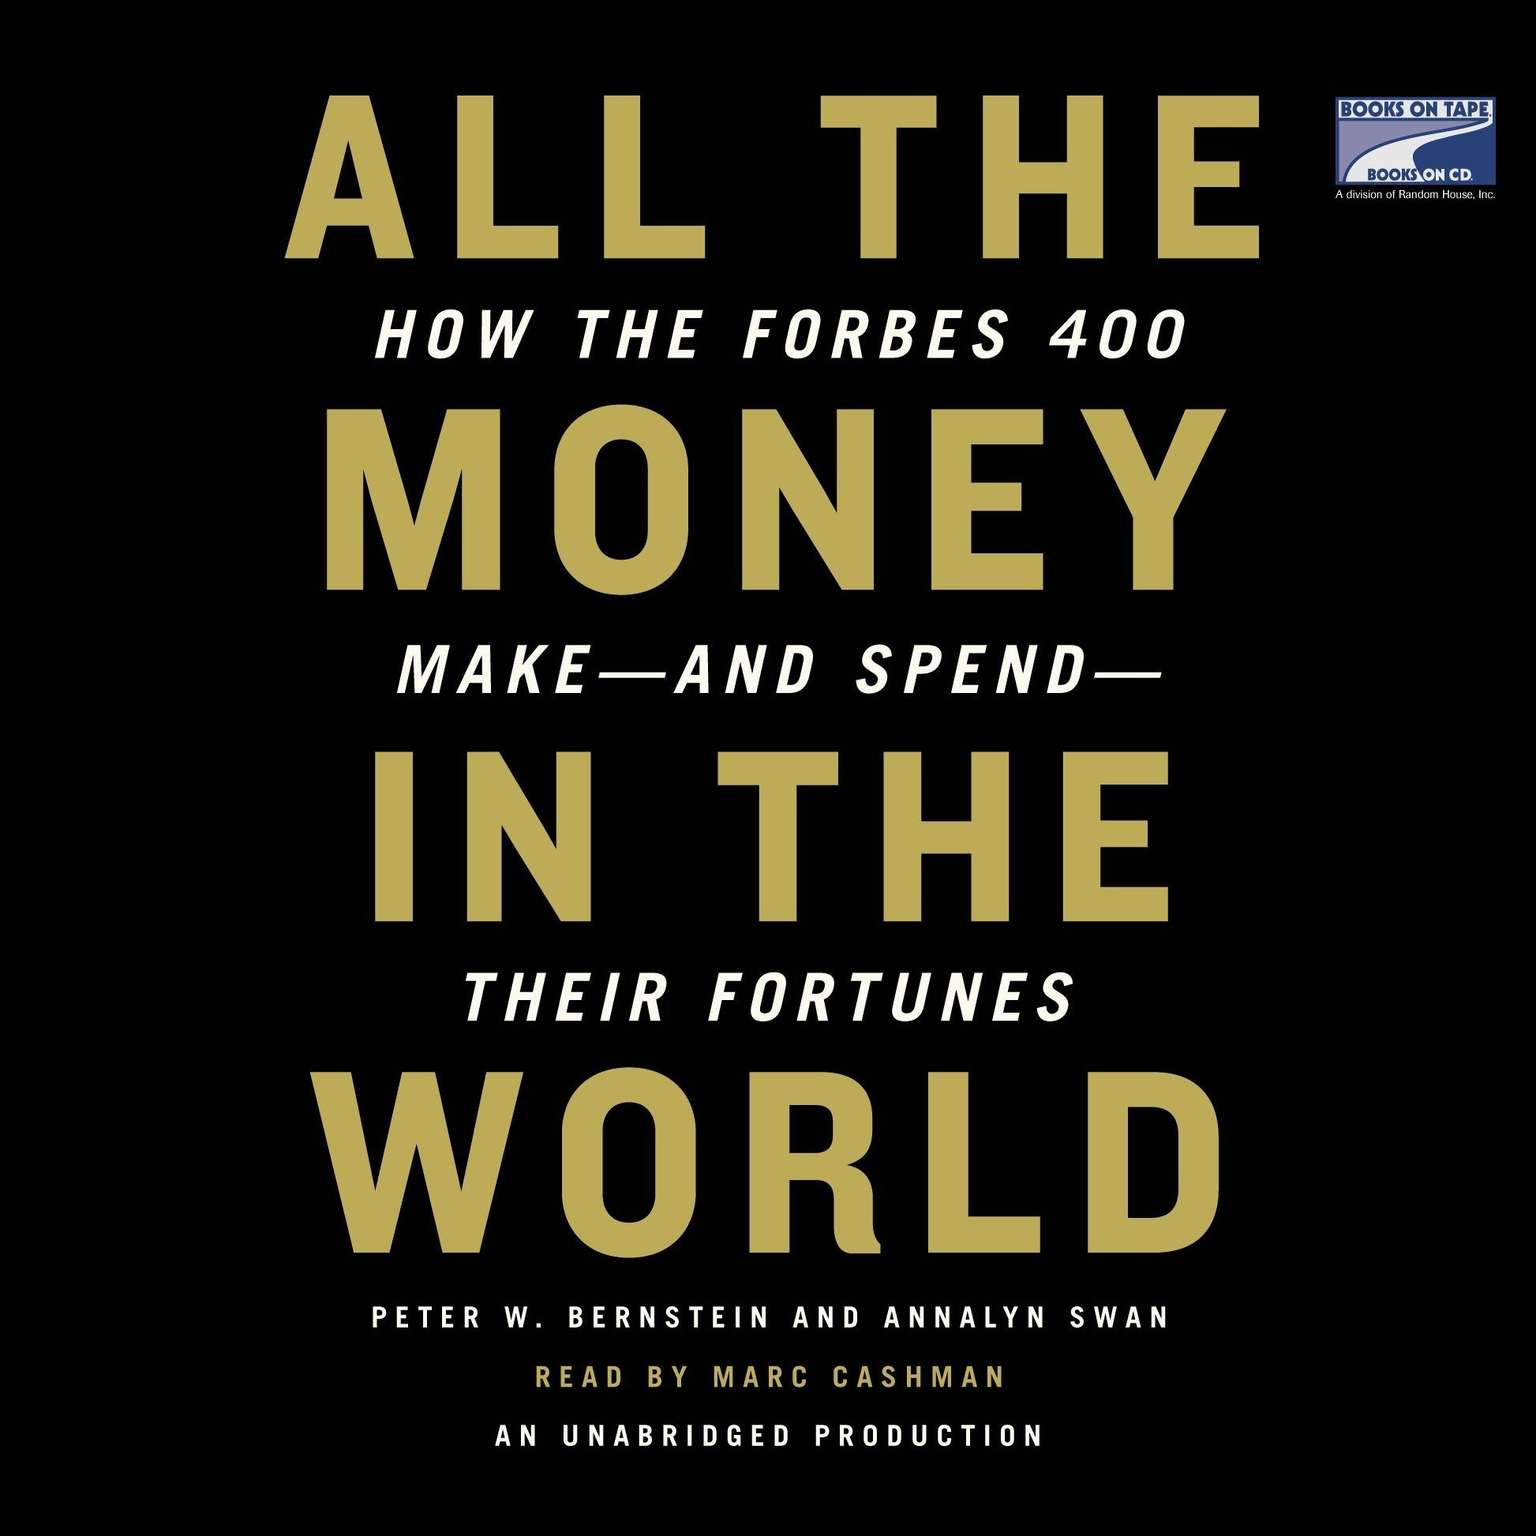 Printable All the Money in the World: How the Forbes 400 Make—and Spend—Their Fortunes Audiobook Cover Art